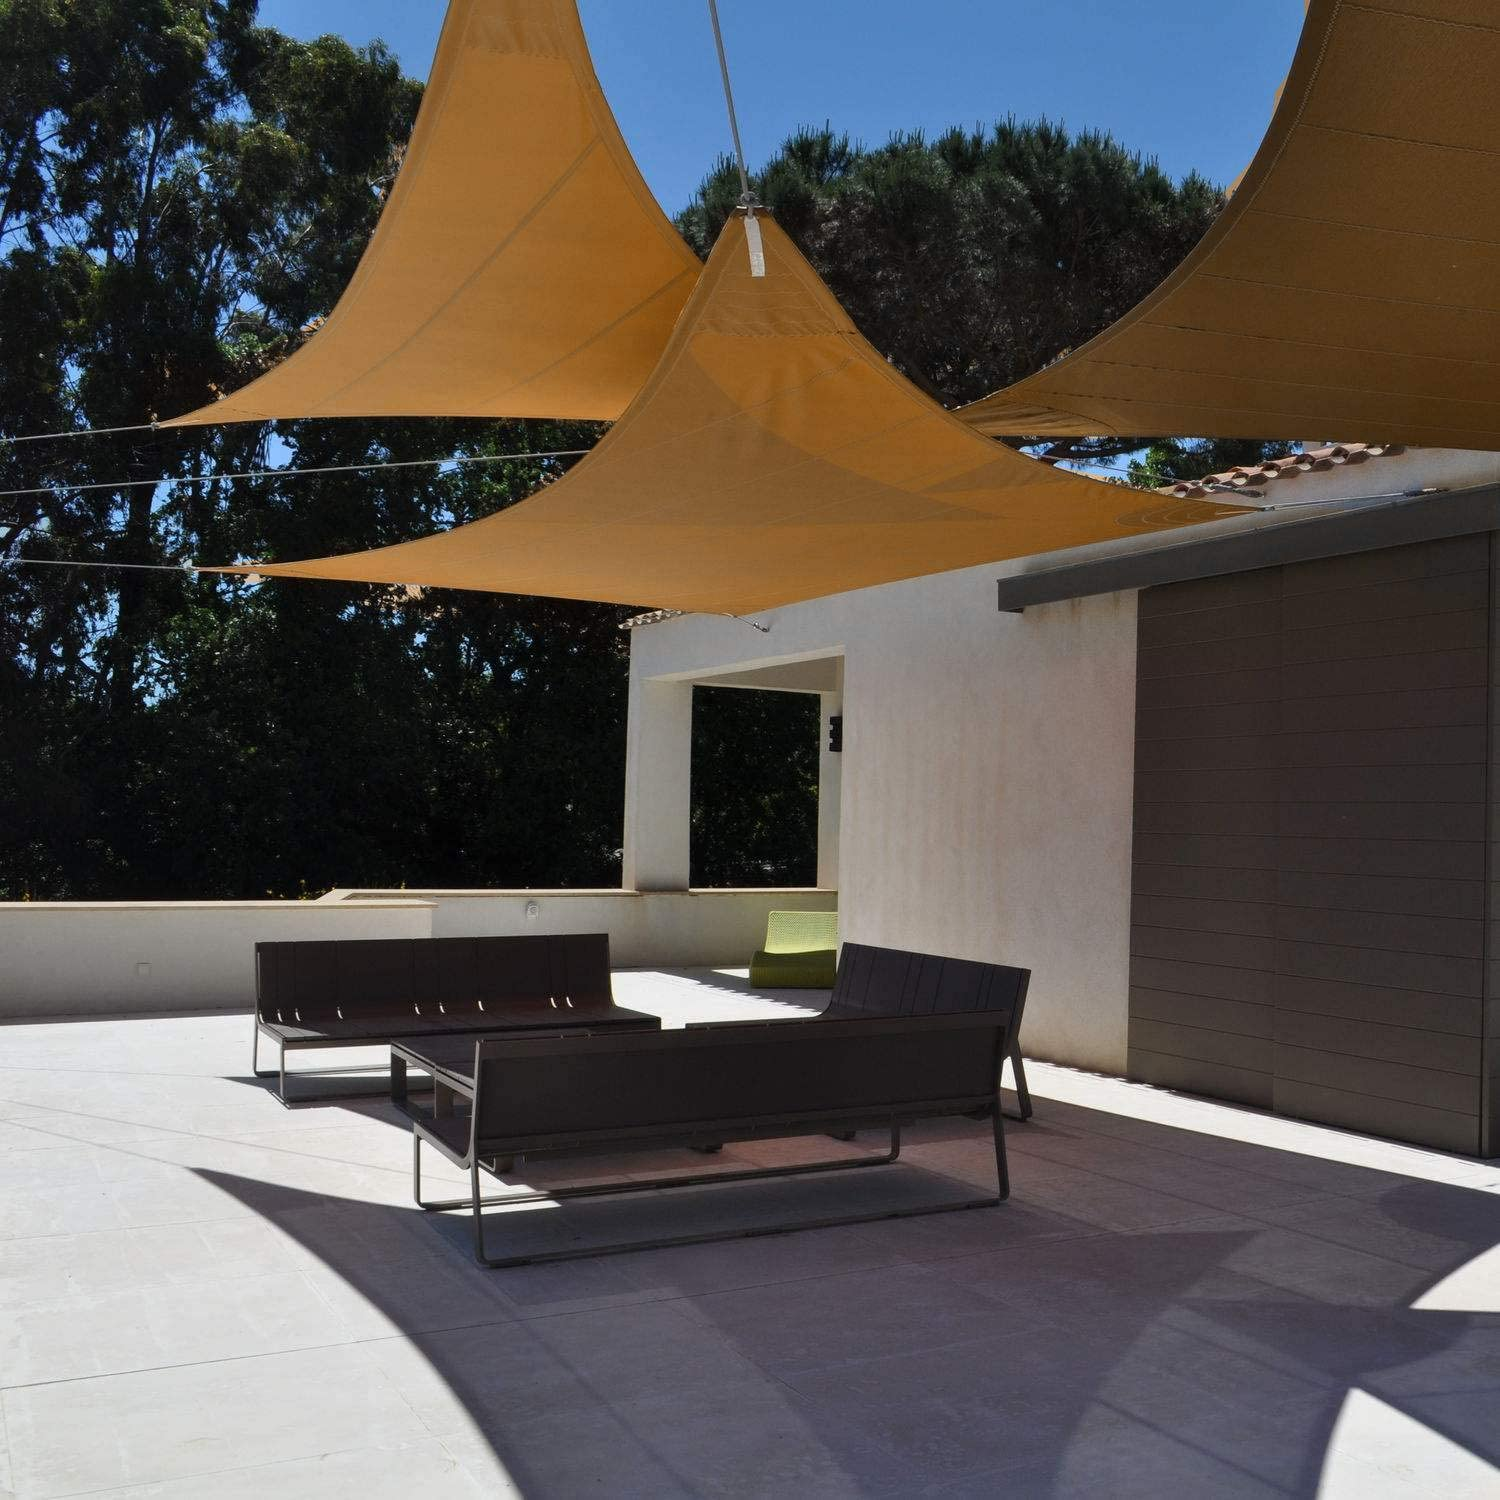 Beige Triangle Sun Shade Sail Canopy Awning AMYIPO 95/% UV Blockage Water /& Air Permeable for Patio Yard Pergola Commercial /& Residential 16x16x16ft